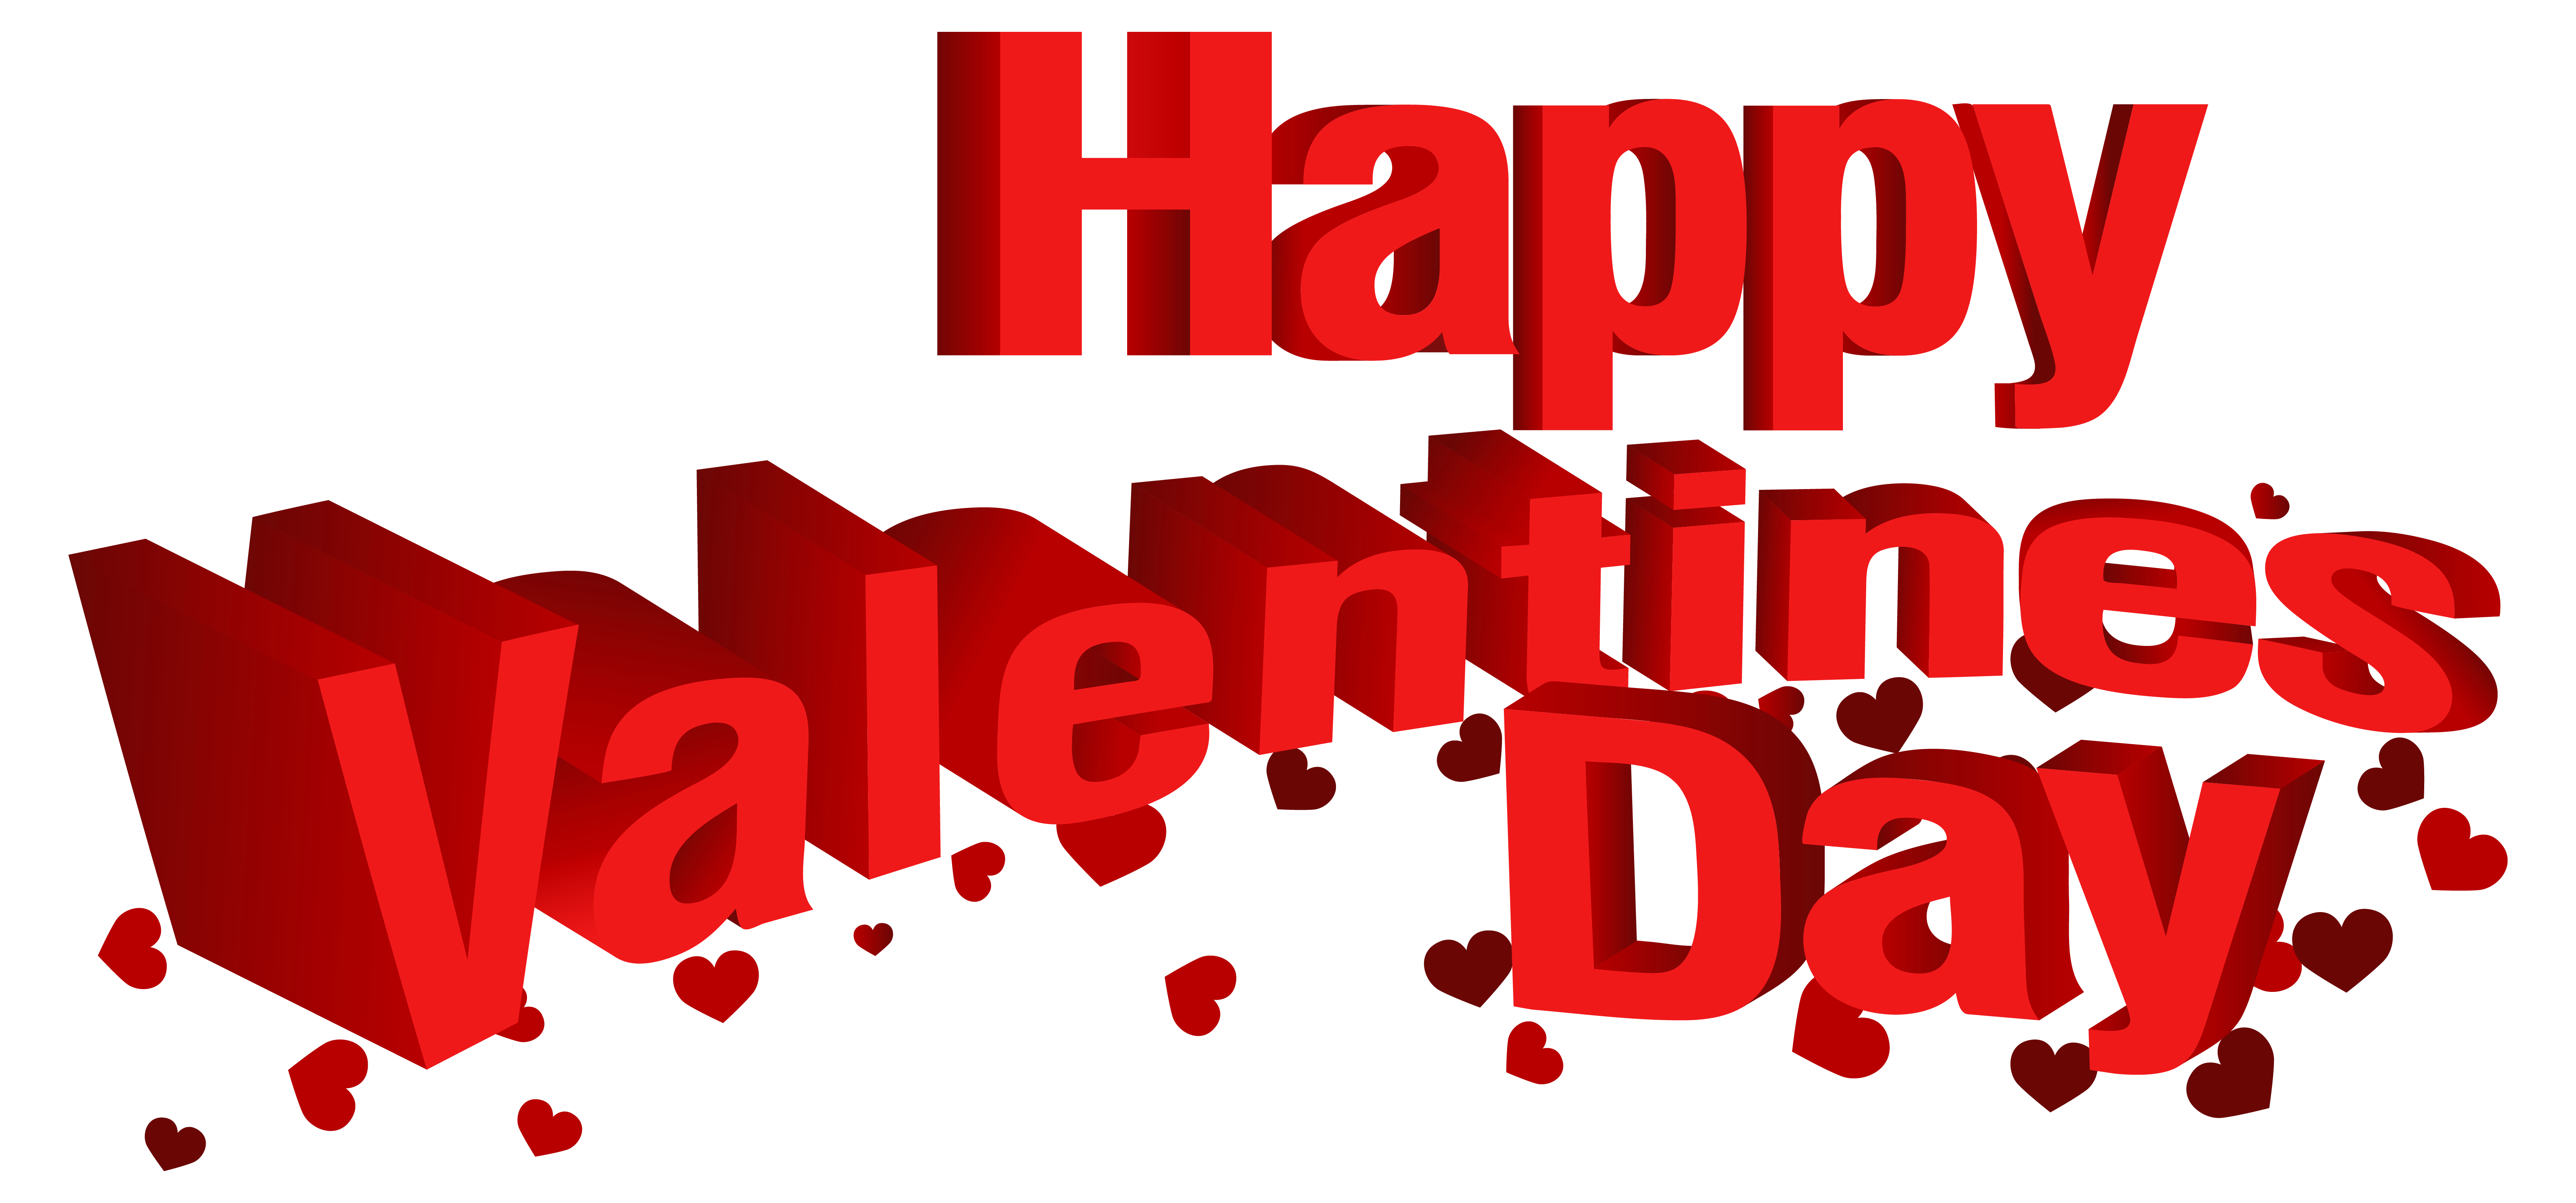 Happy Valentine's Day Transparent PNG Clip Art Image.